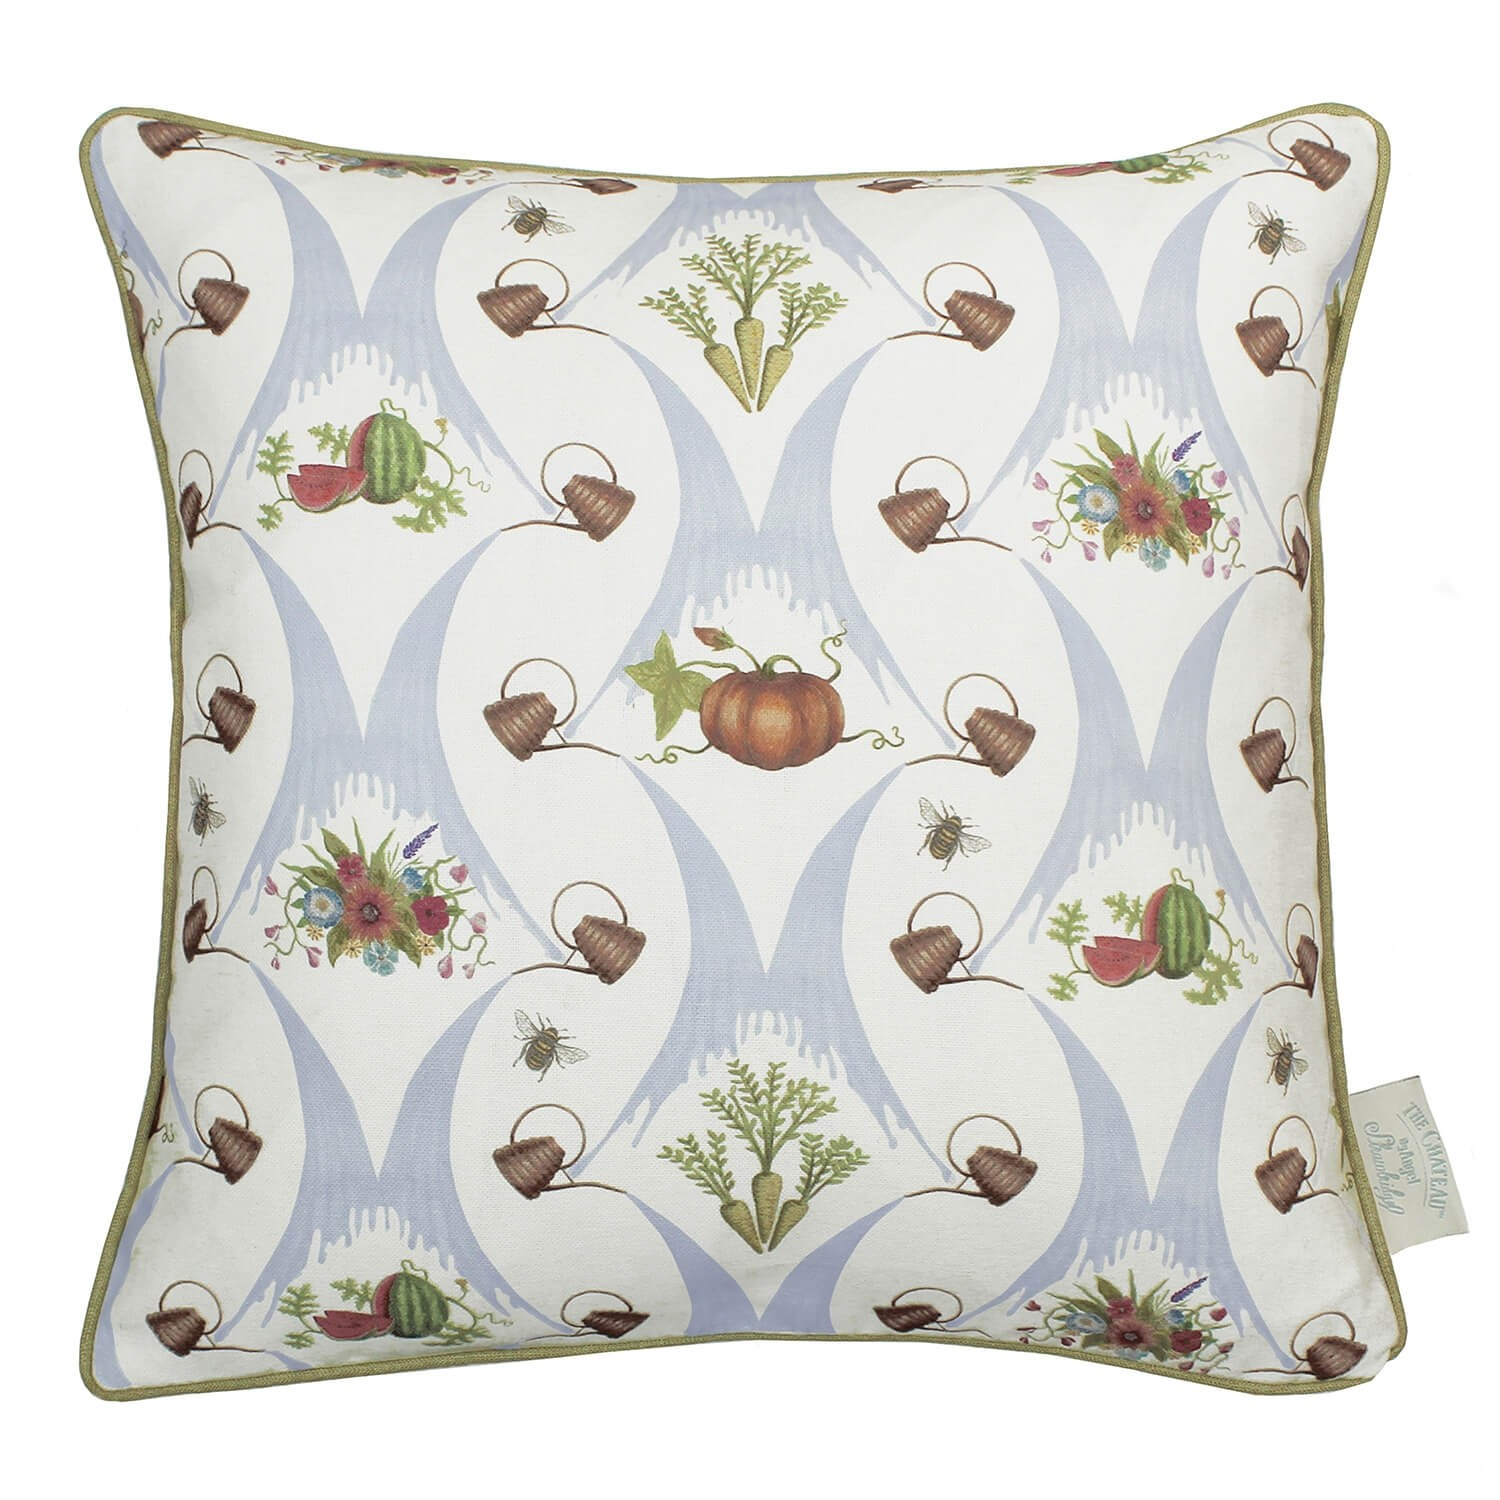 The Chateau By Angel Strawbridge Watering Can Harvest Cushio